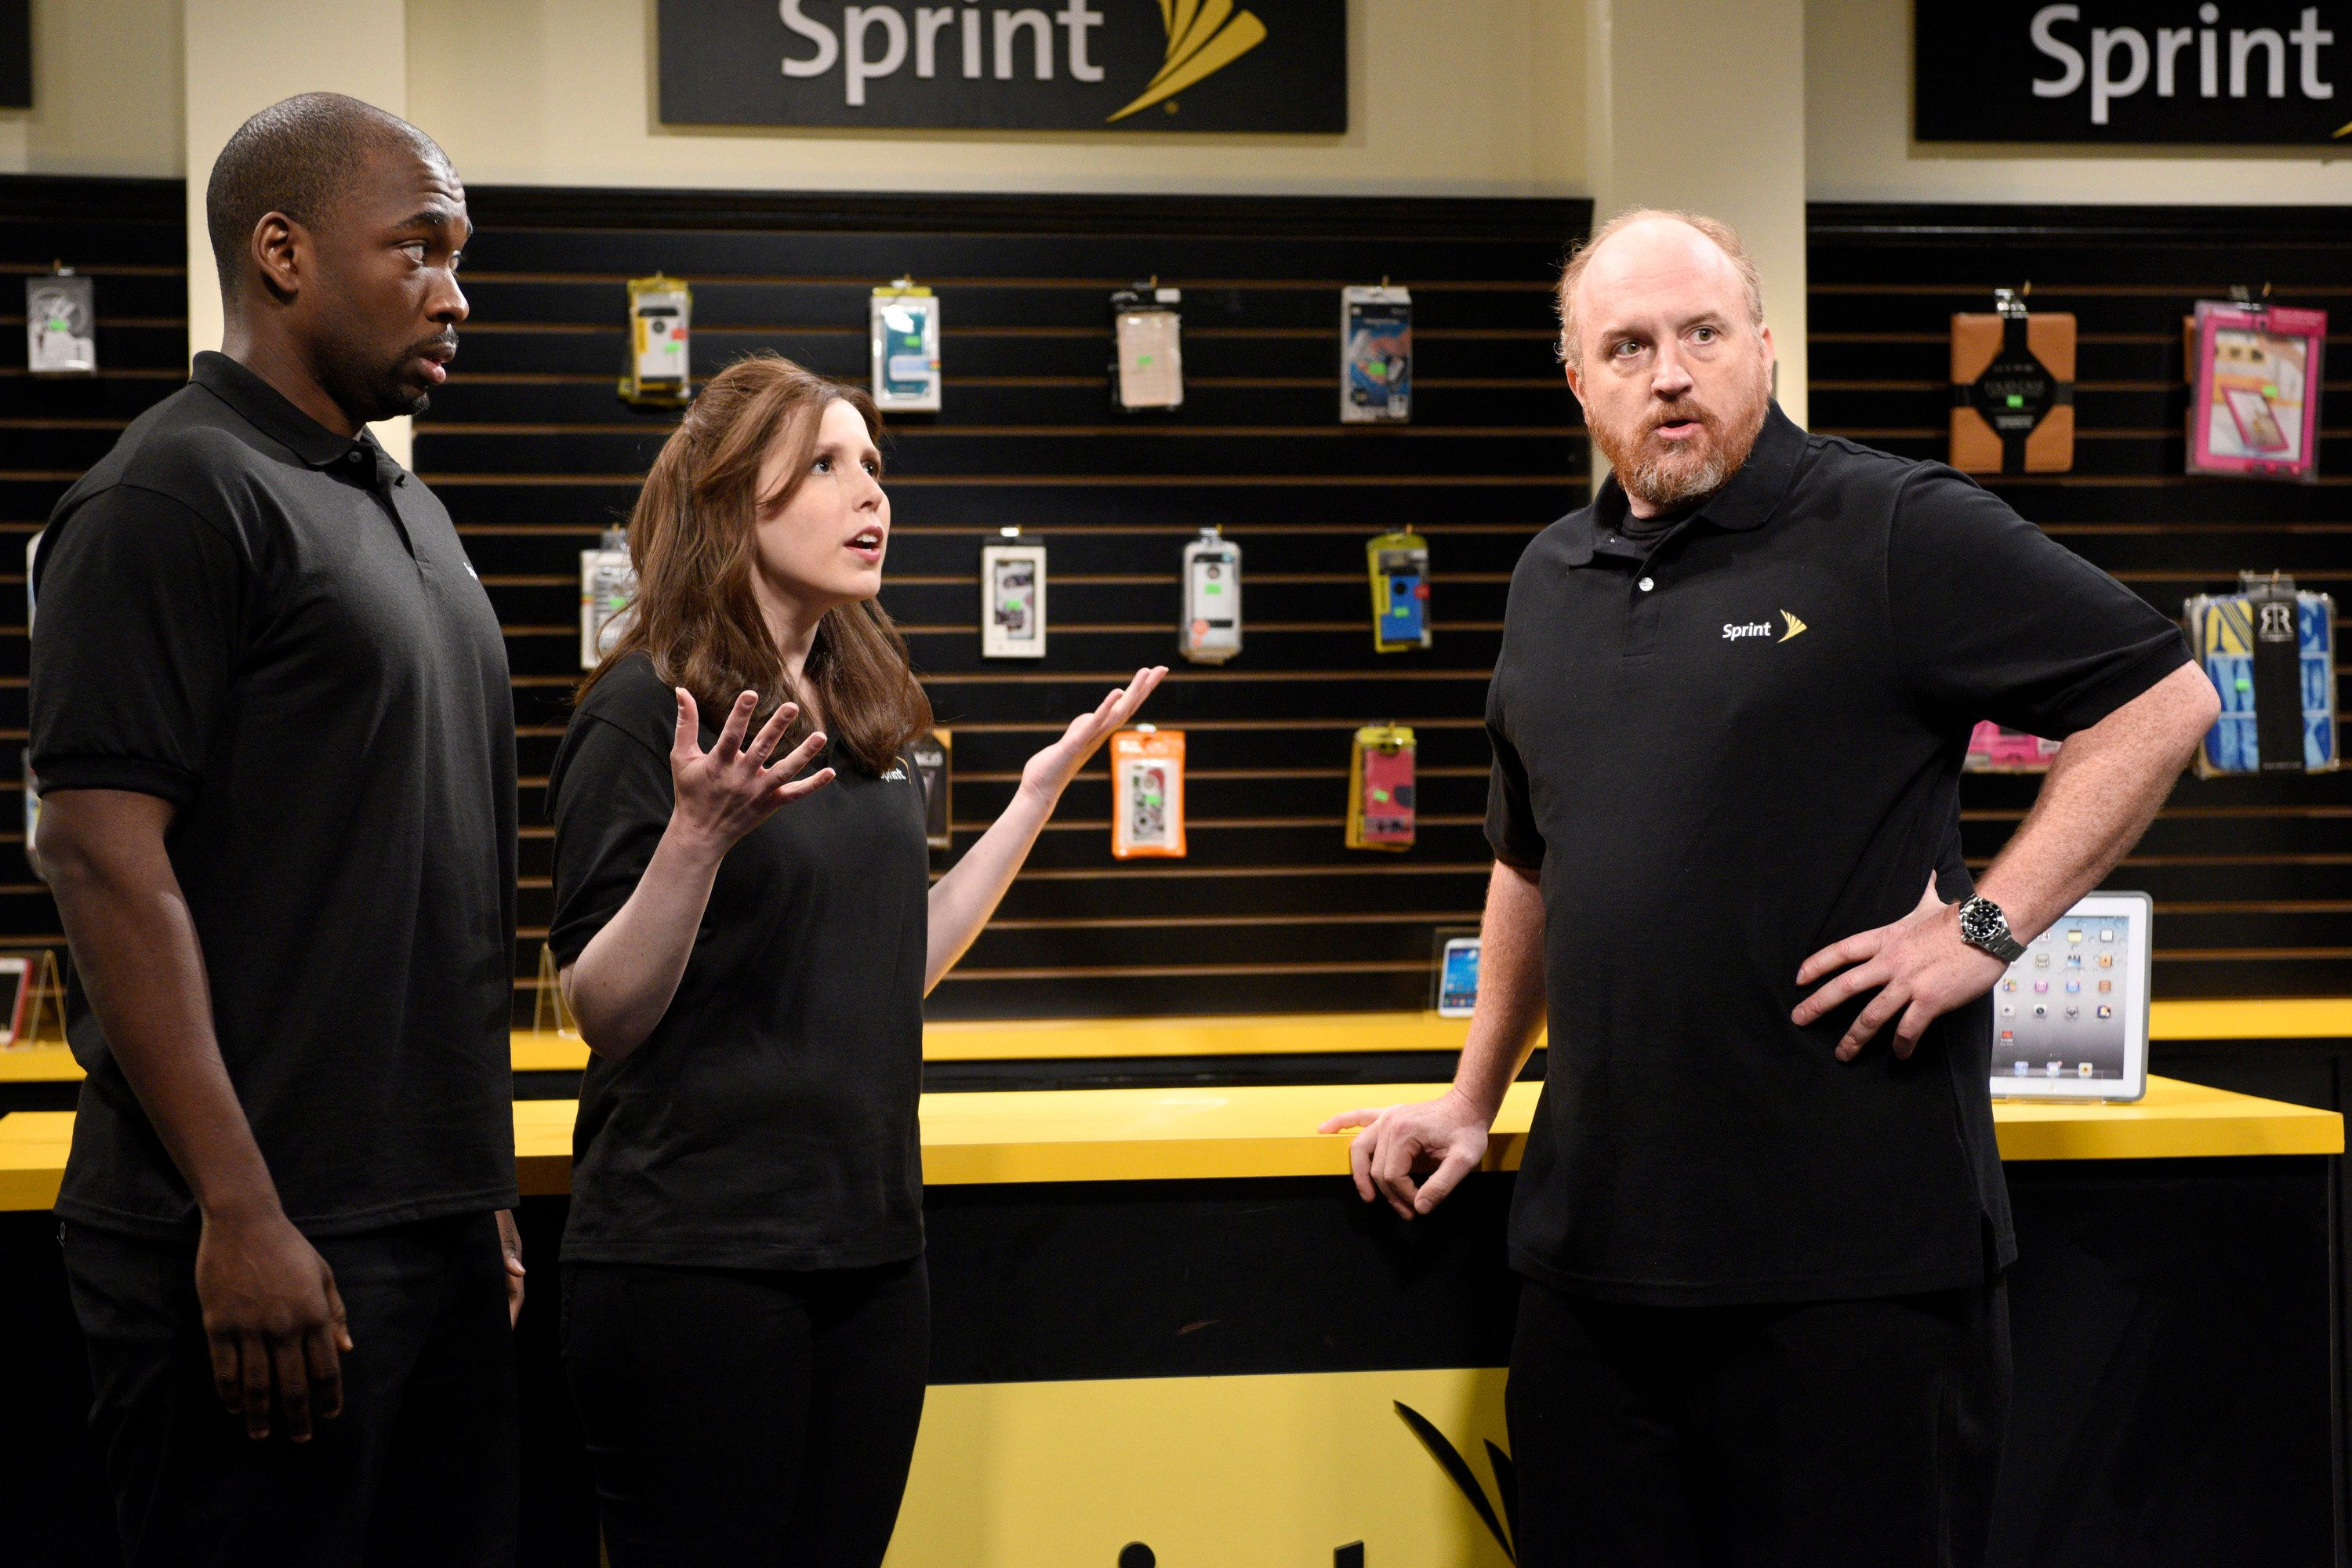 SATURDAY NIGHT LIVE -- 'Louis C.K.' Episode 1683 -- Pictured: (l-r) Jay Pharoah, Vanessa Bayer and Louis C.K. as Donald during the 'This Is How I Talk' skit on May 16, 2015 -- (Photo by: Dana Edelson/NBC/NBCU Photo Bank via Getty Images)